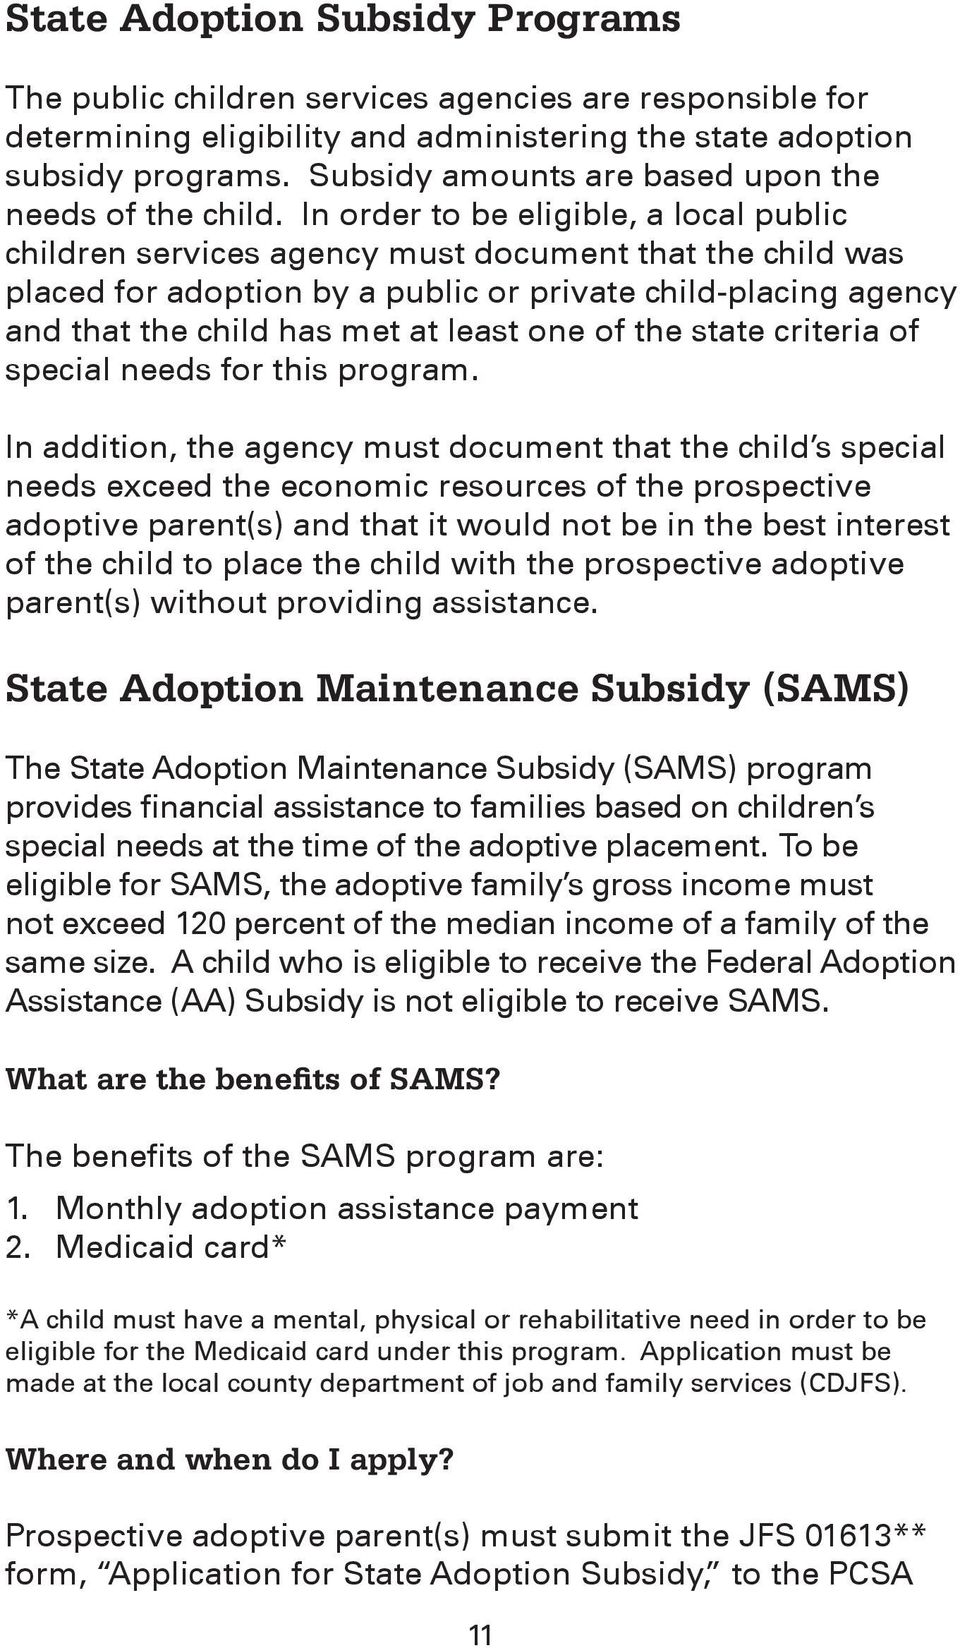 What Is the Adoption Assistance and Child Welfare Act recommendations